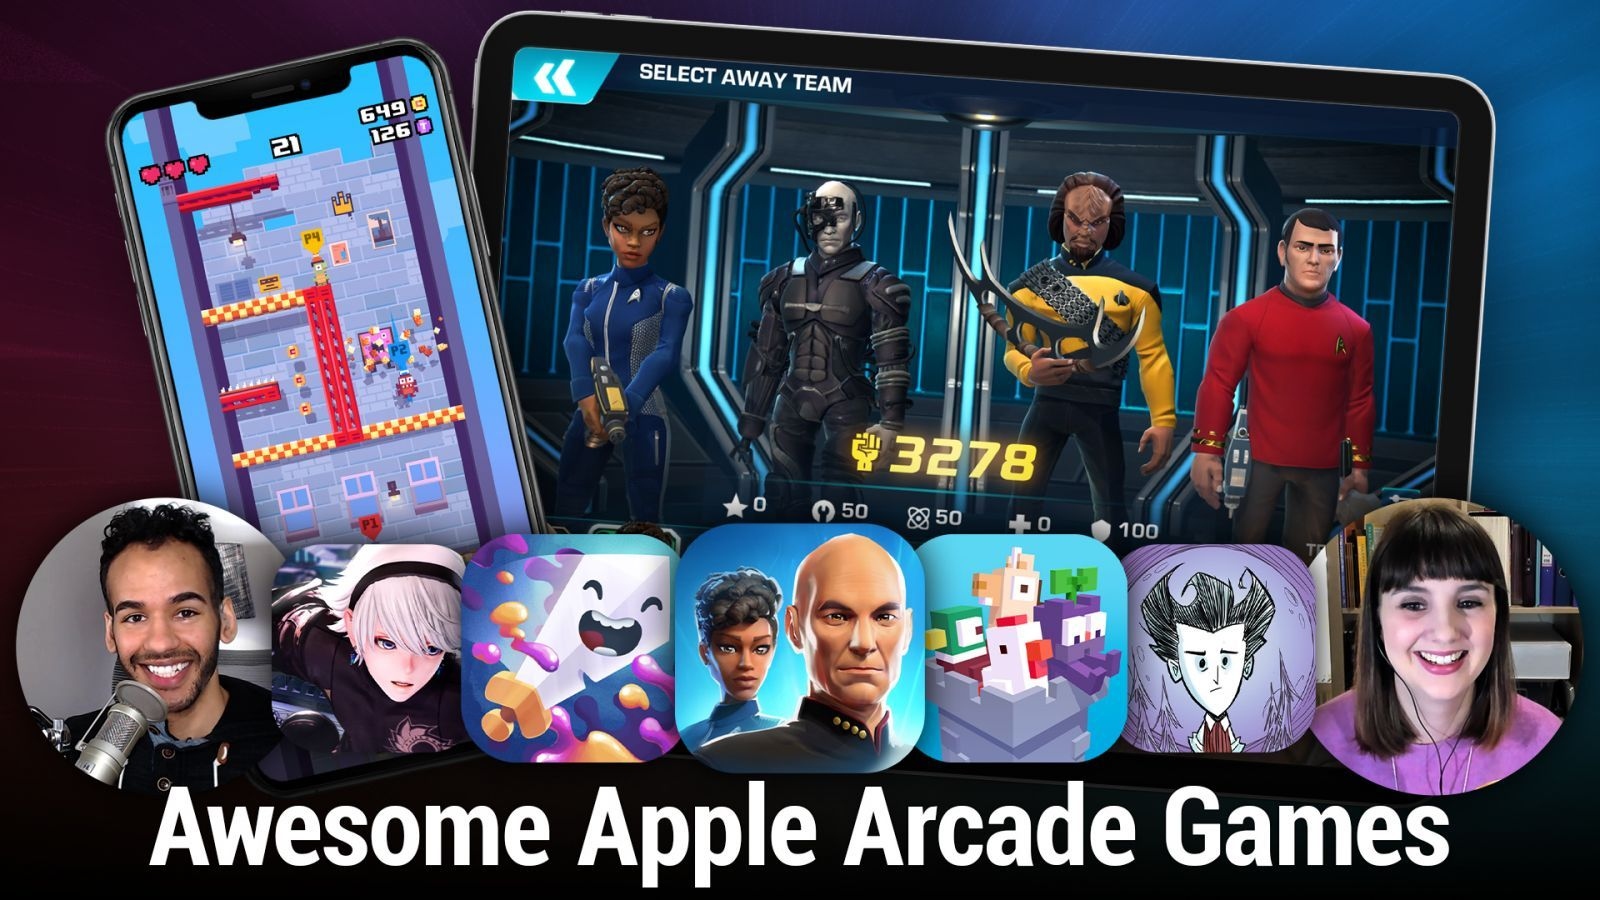 iOS 544: Awesome Apple Arcade Games - Crossy Road Castle, Star Trek: Legends, FANTASIAN, and more